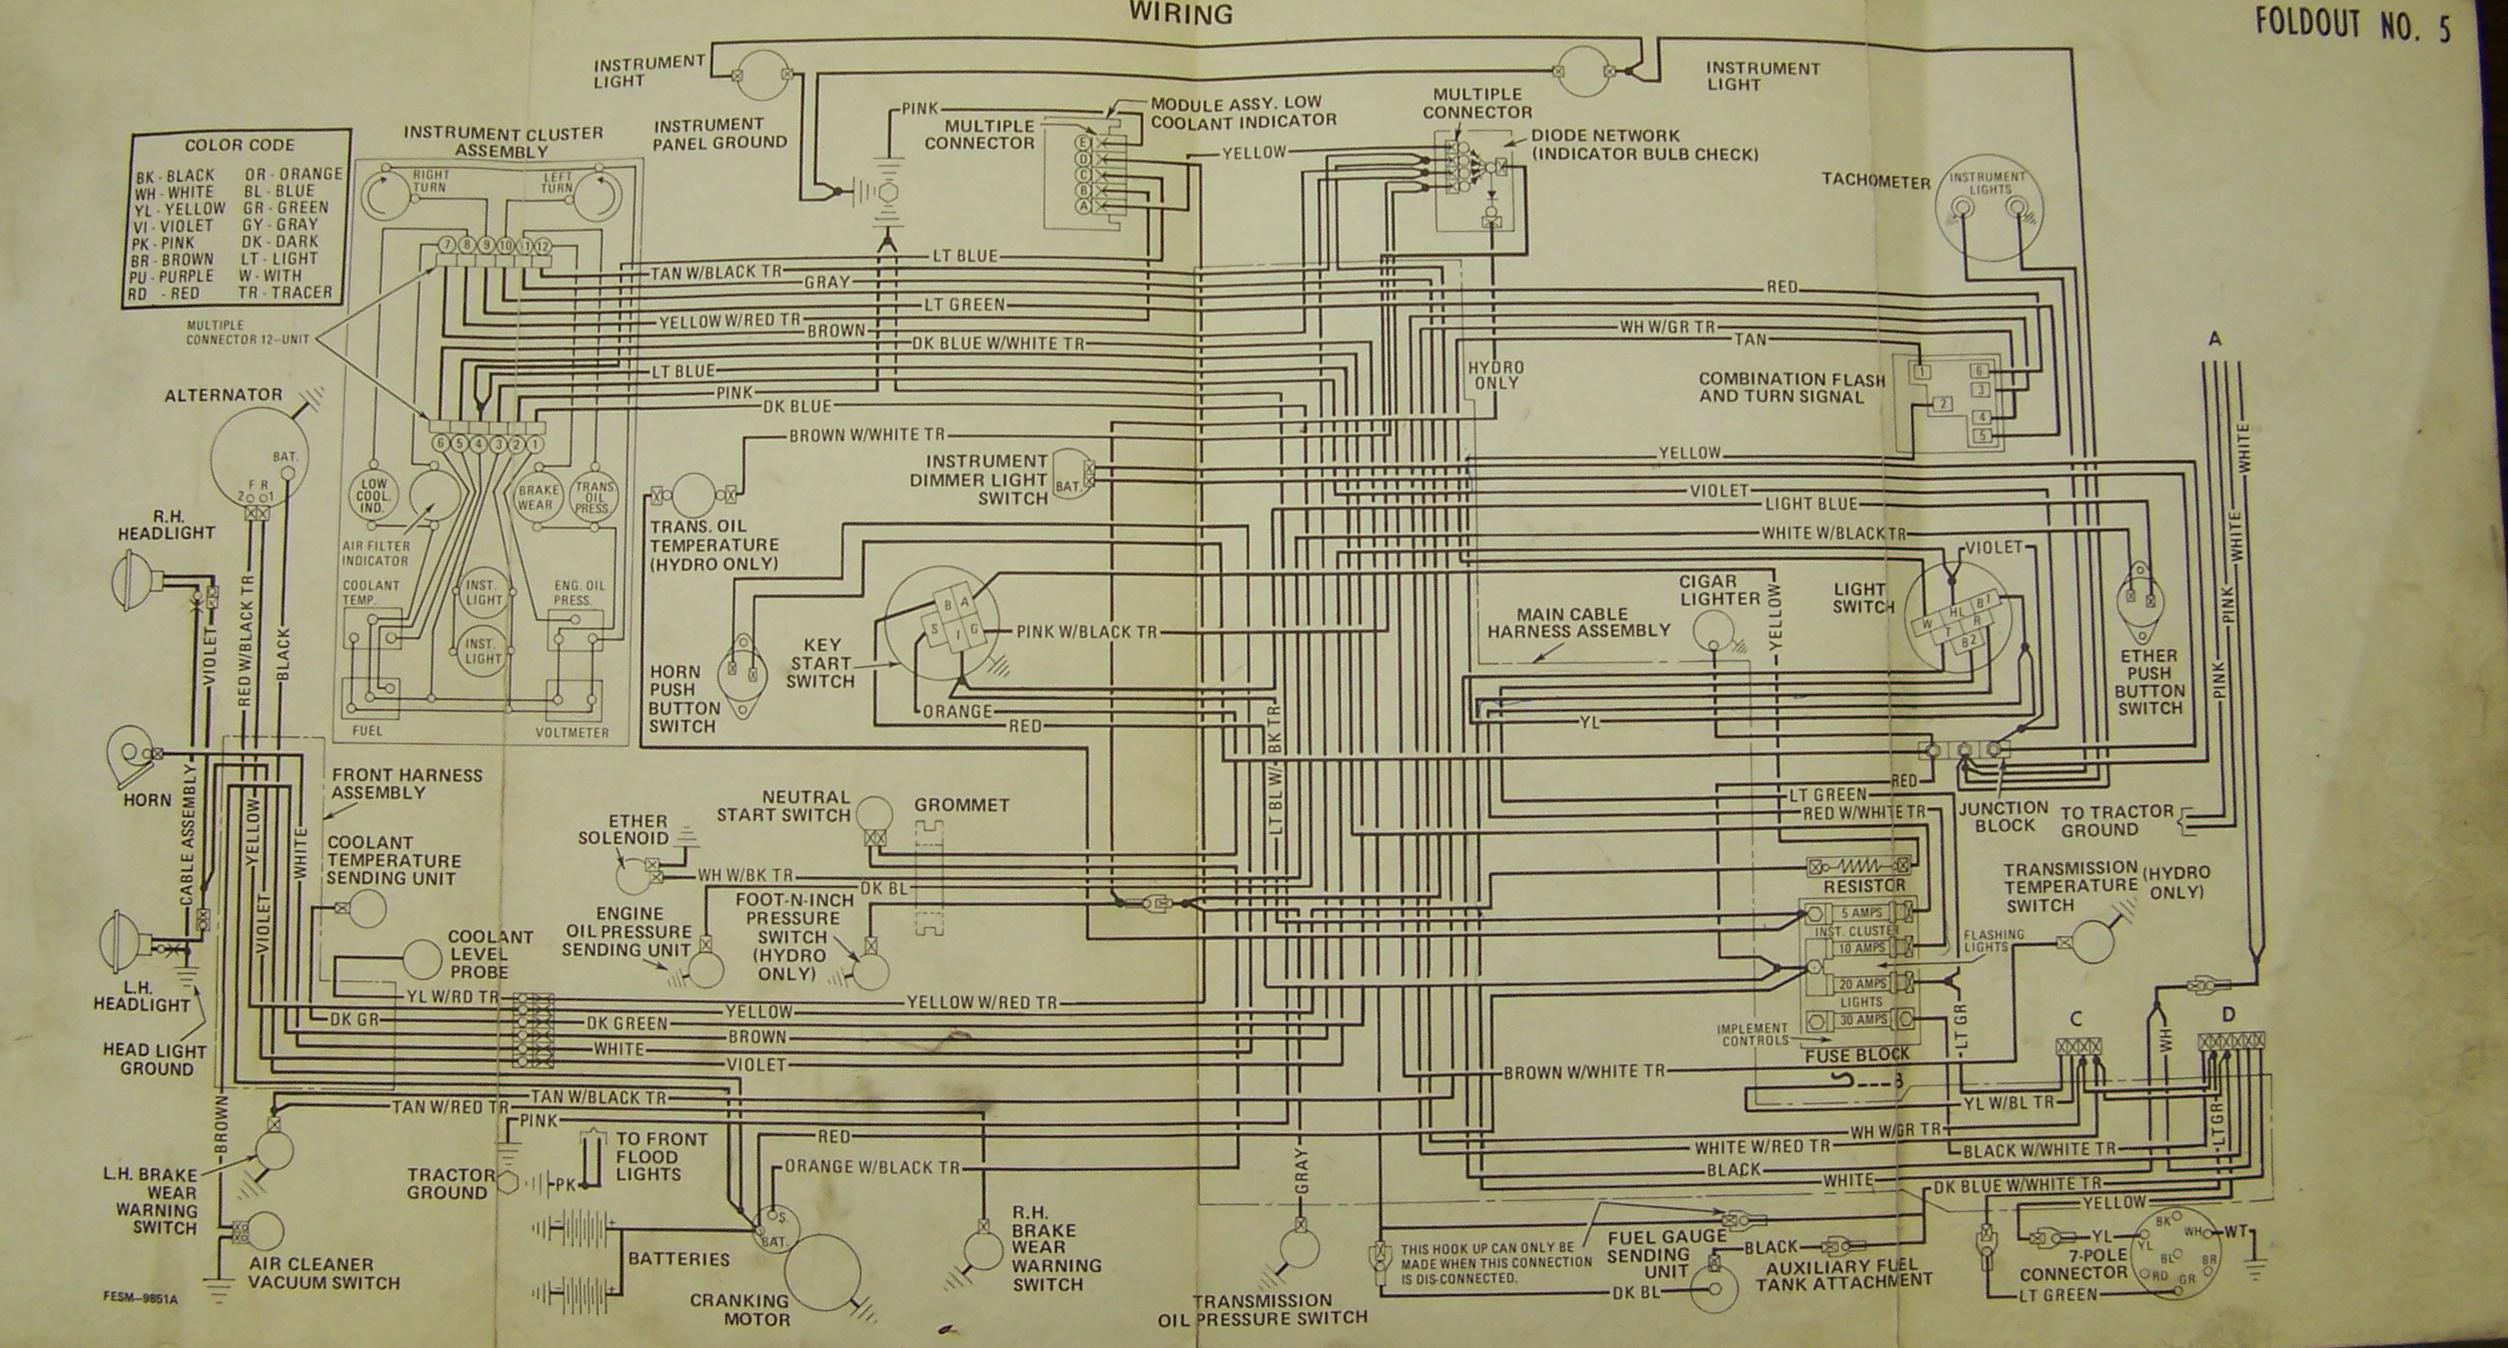 international 254 wiring diagram detailed schematics diagram rh lelandlutheran com 2006 International 4300 Start Wiring Diagram International Truck 4300 Wiring -Diagram